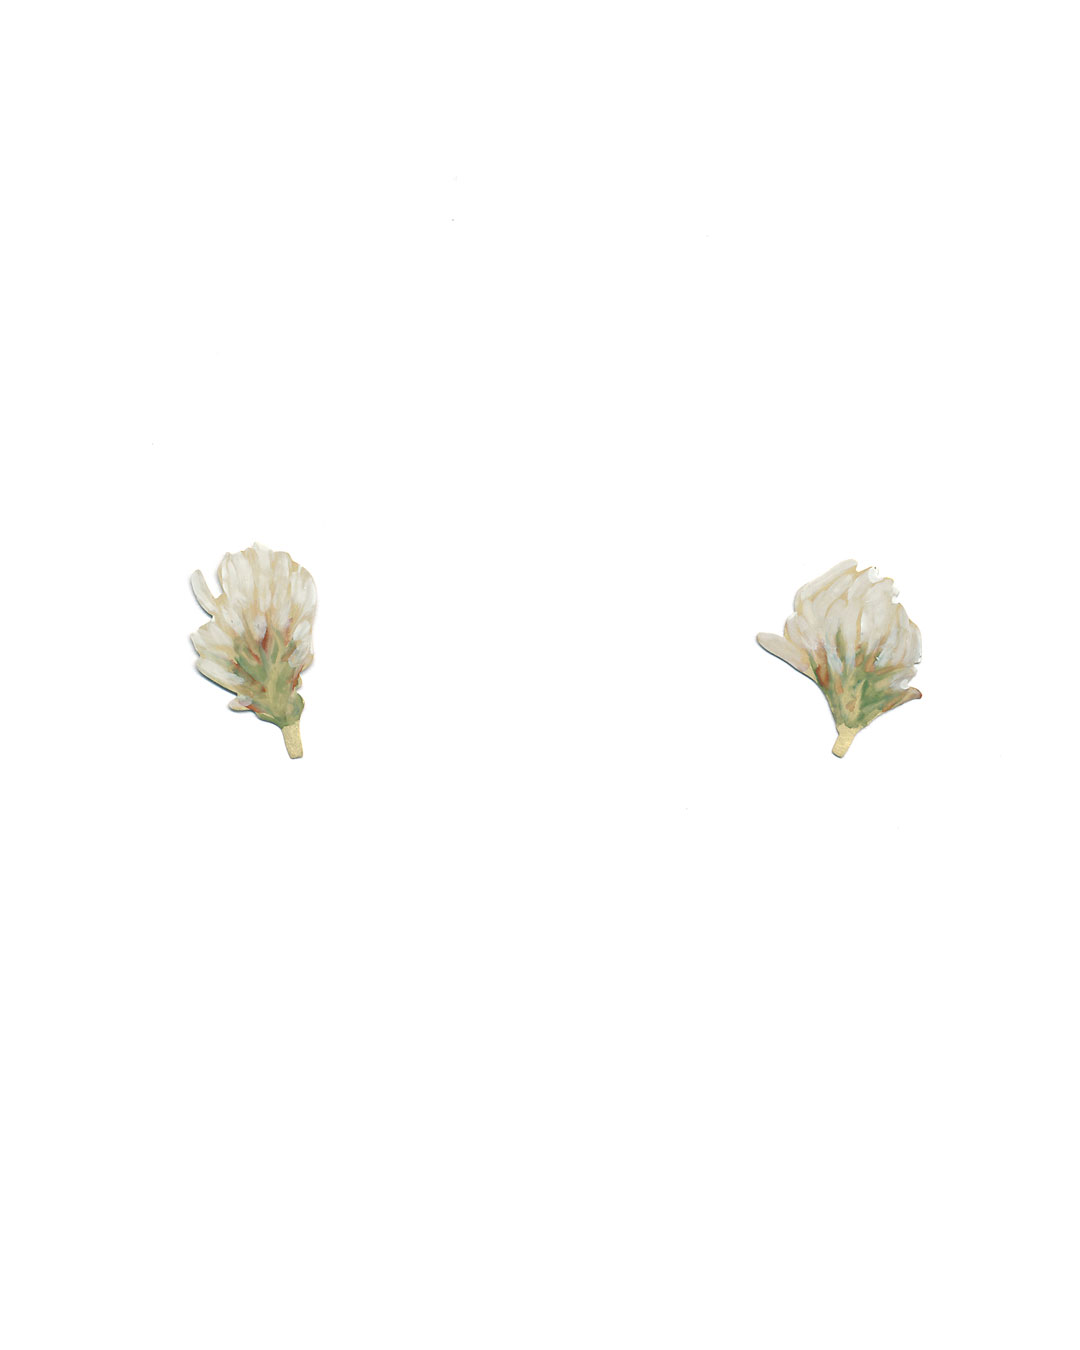 Christopher Thompson Royds, White Clover, 2019, earrings; 18ct gold, hand-painted, diamonds, 22 x 19 mm, €1150